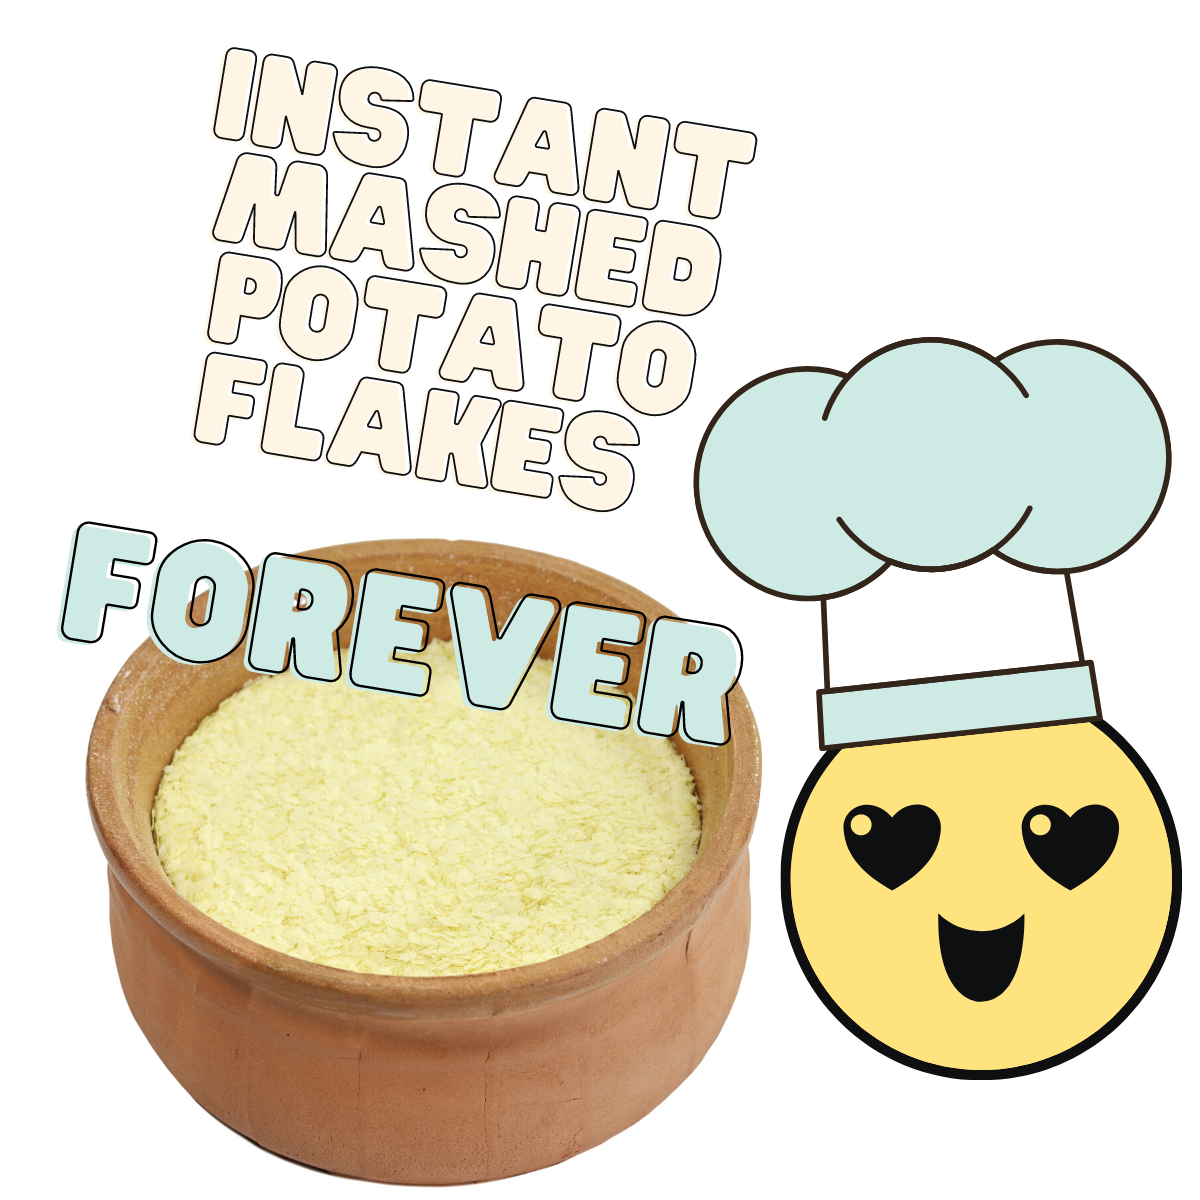 Bowl of dry potato flakes next to a heart-eyed smiley face wearing a chef's hat. Text: Instant mashed potato flakes forever.